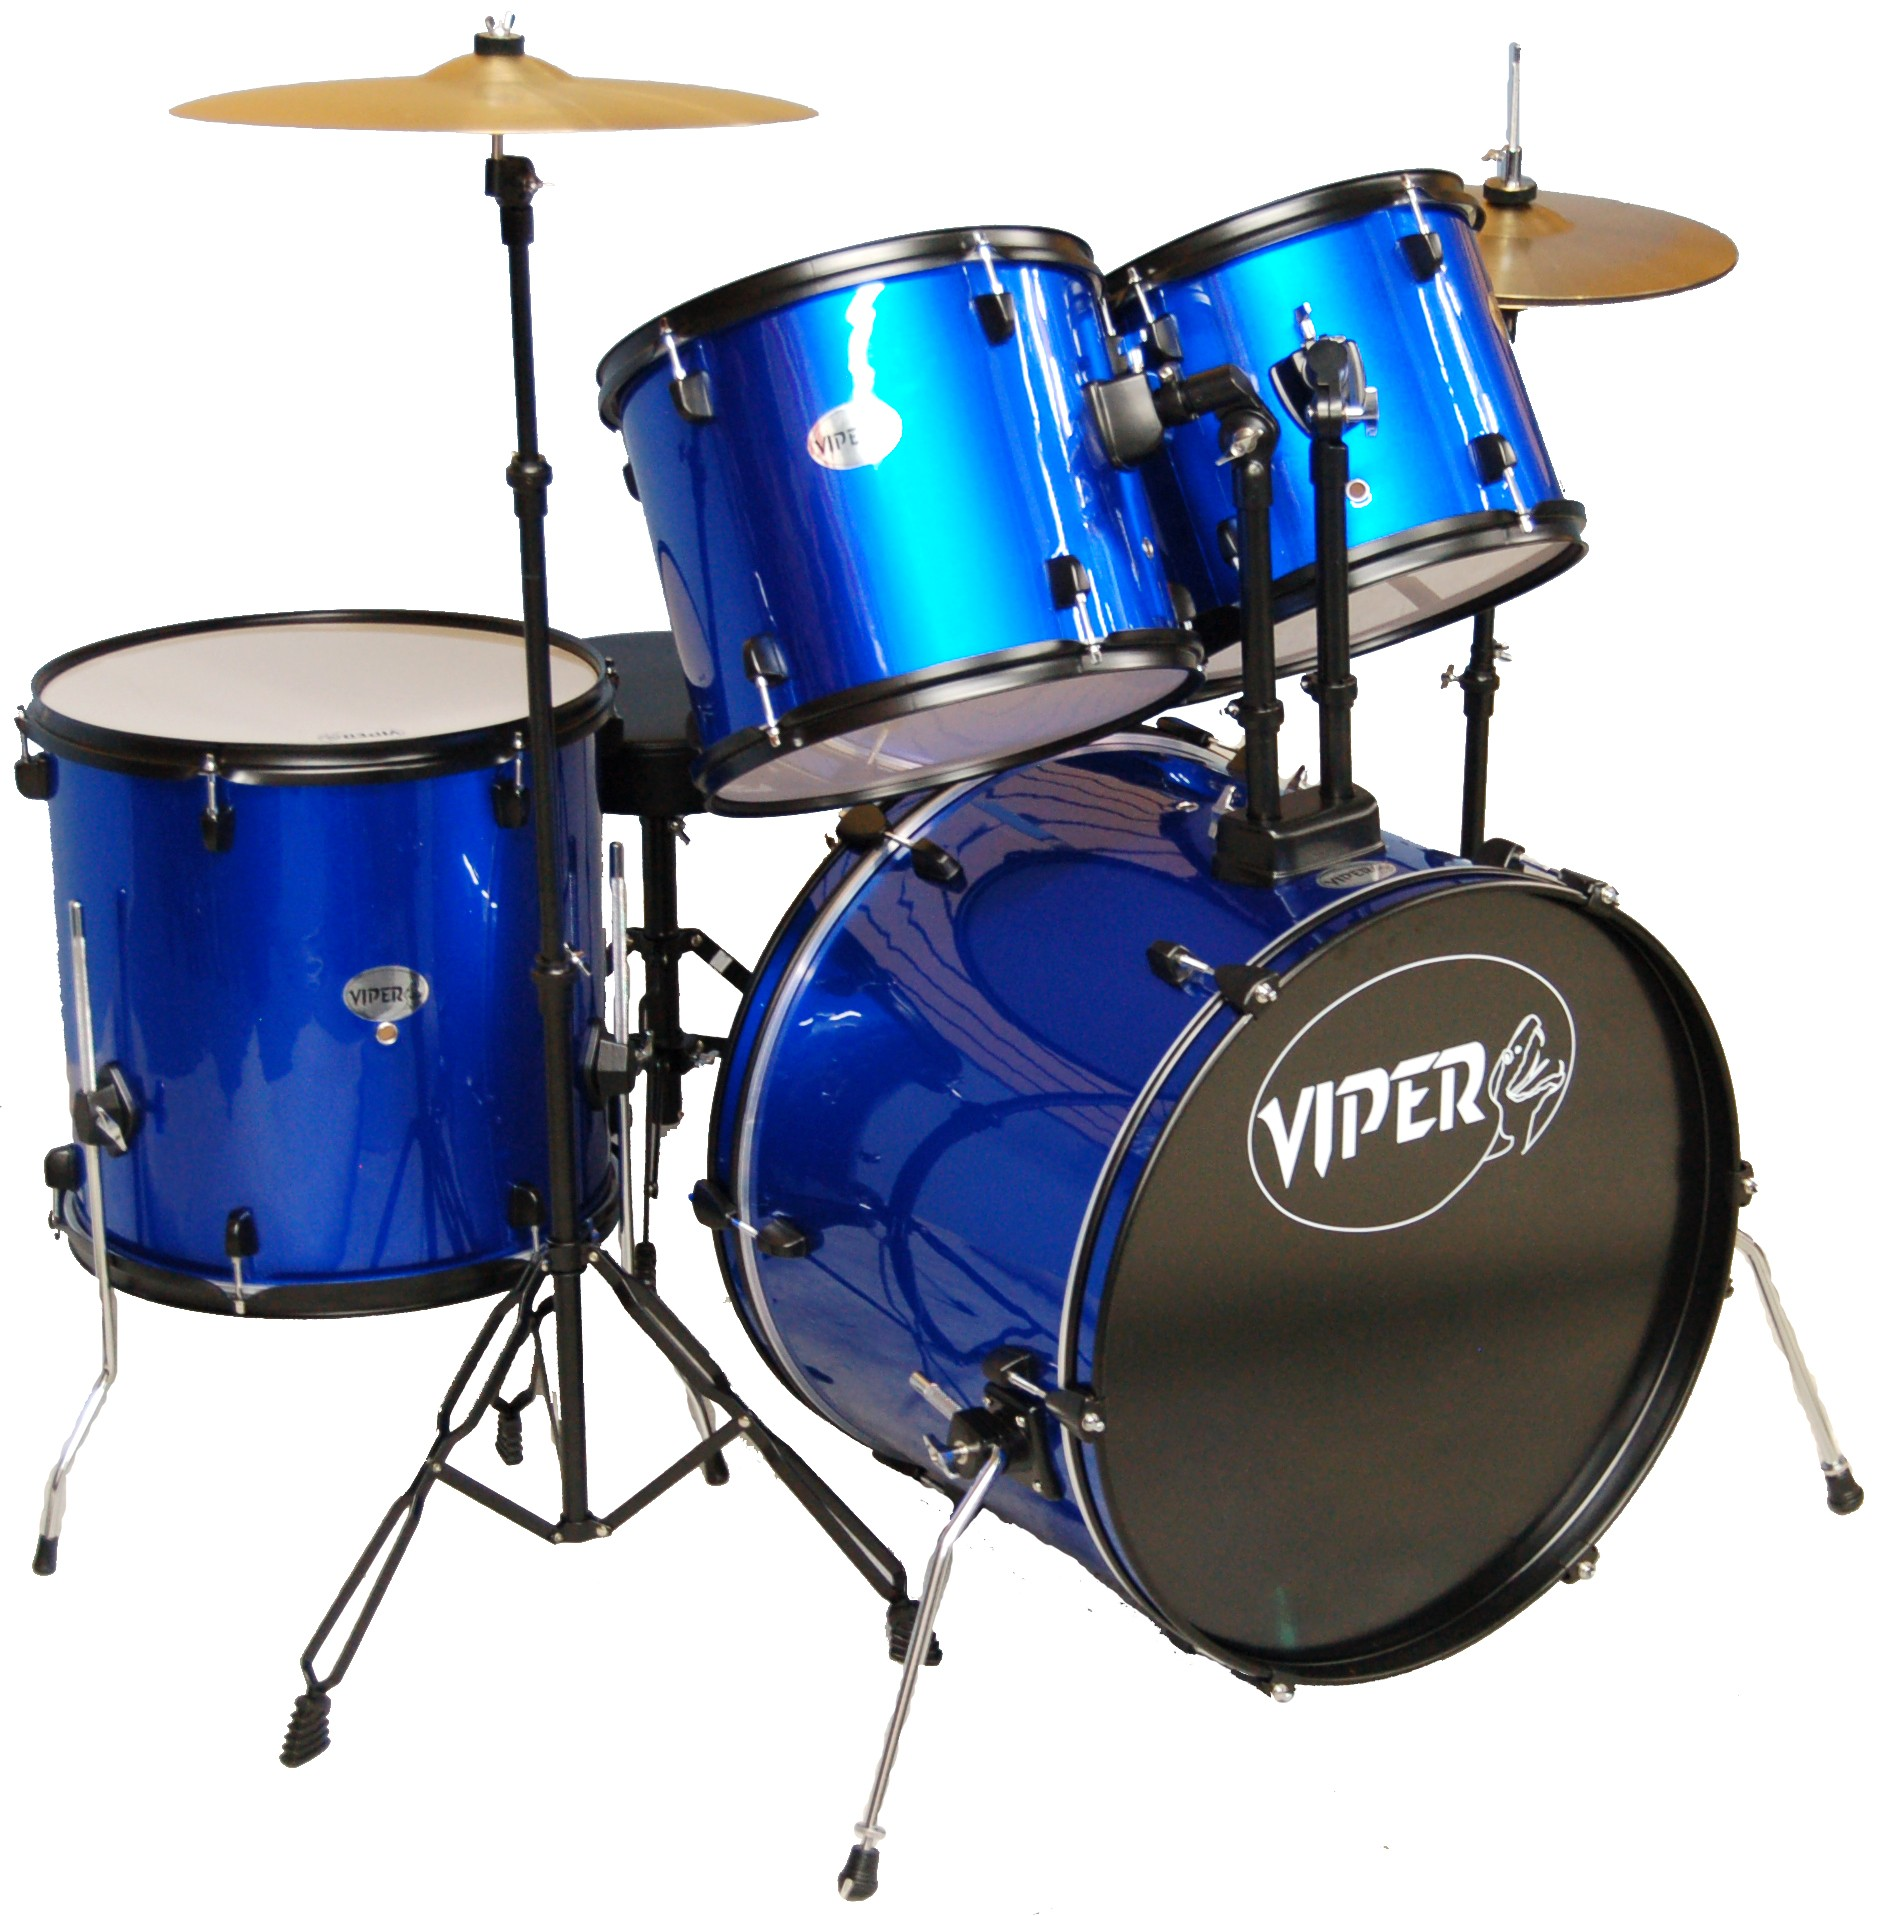 VIPER STUDENT DRUM SET METALLIC BLUE